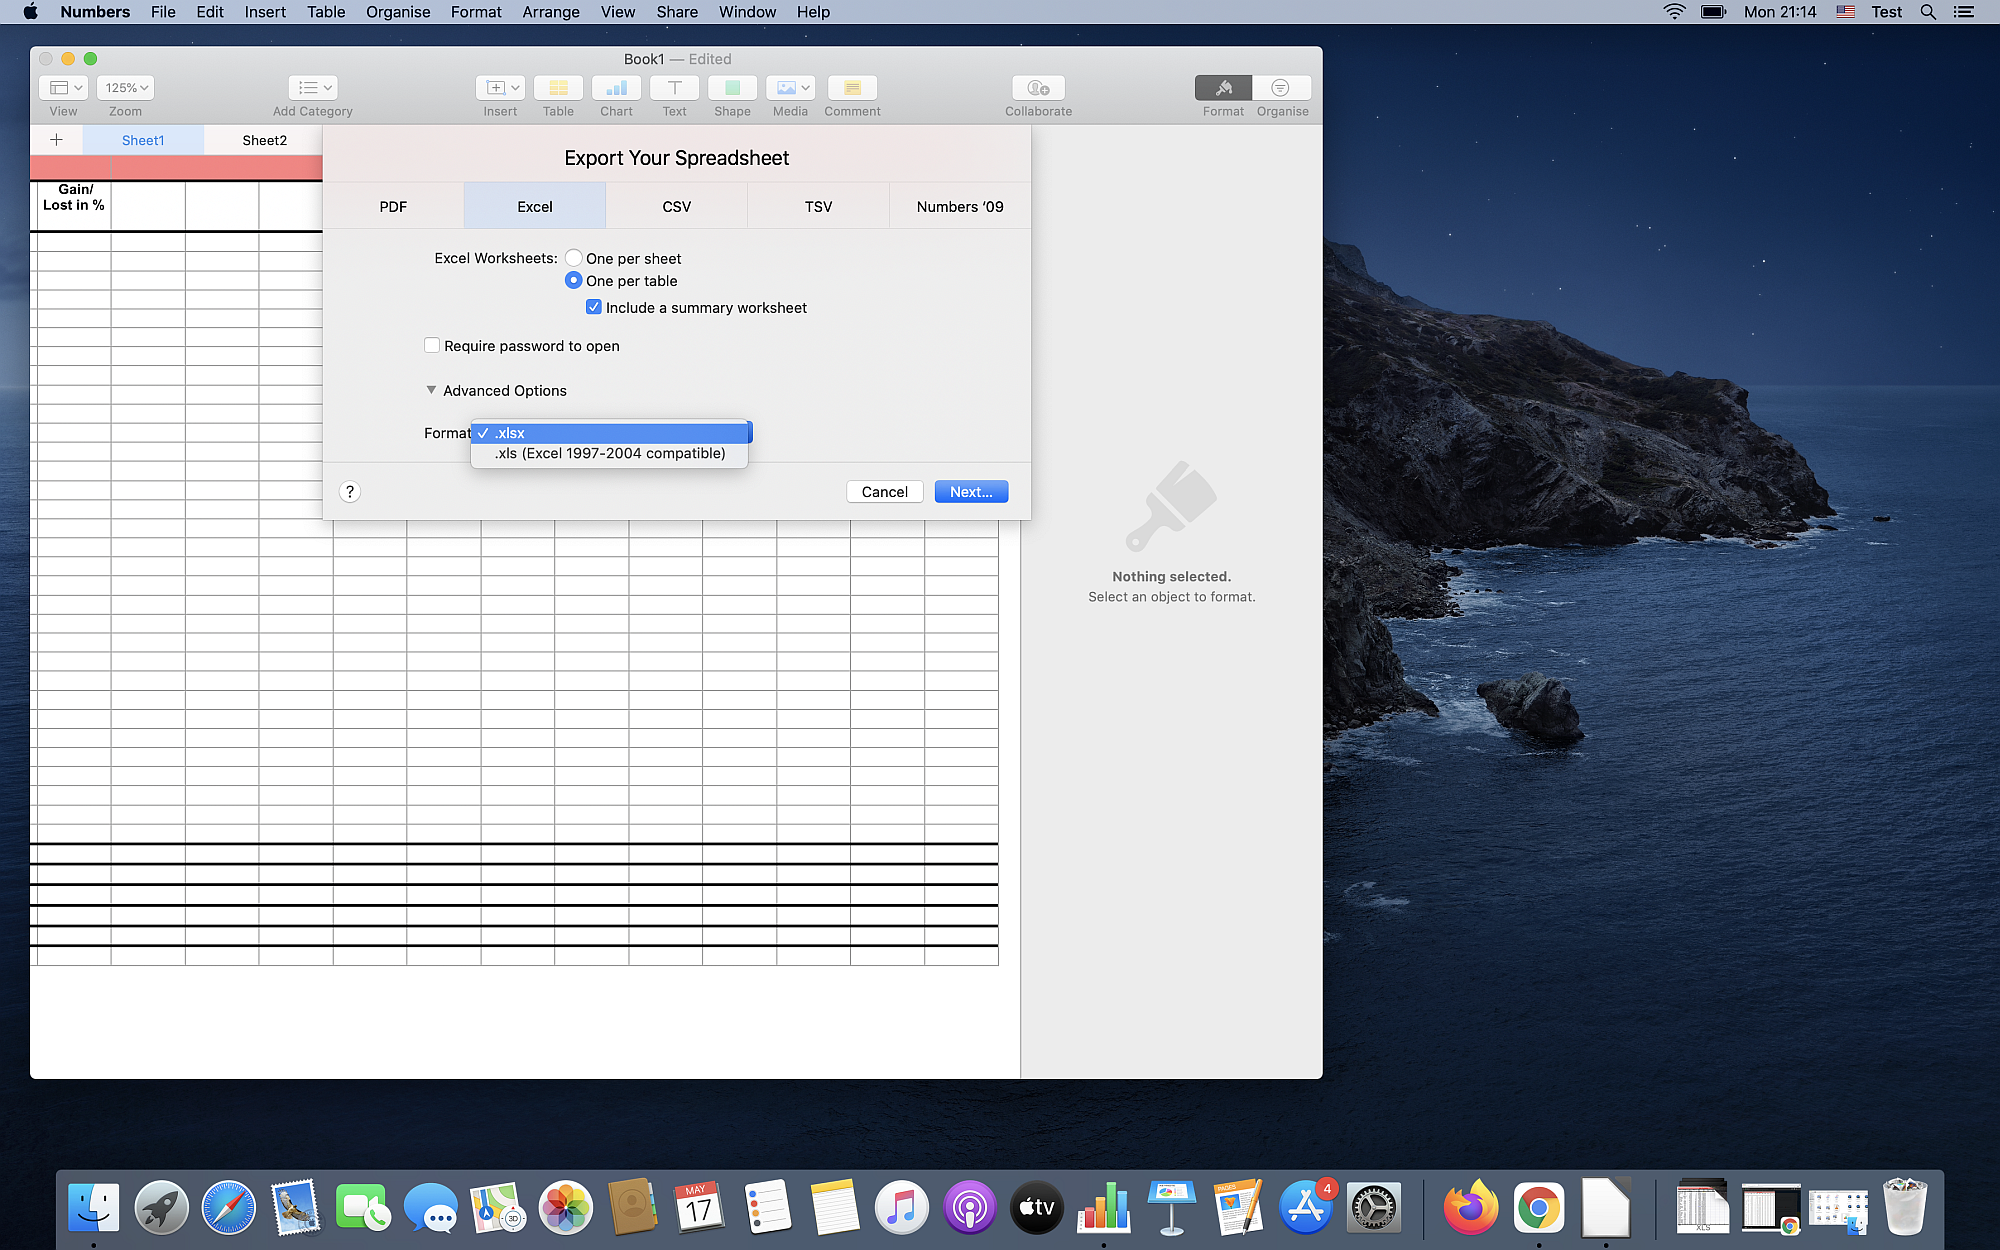 How to convert XLS to XLSX on Mac OS Catalina using Numbers?